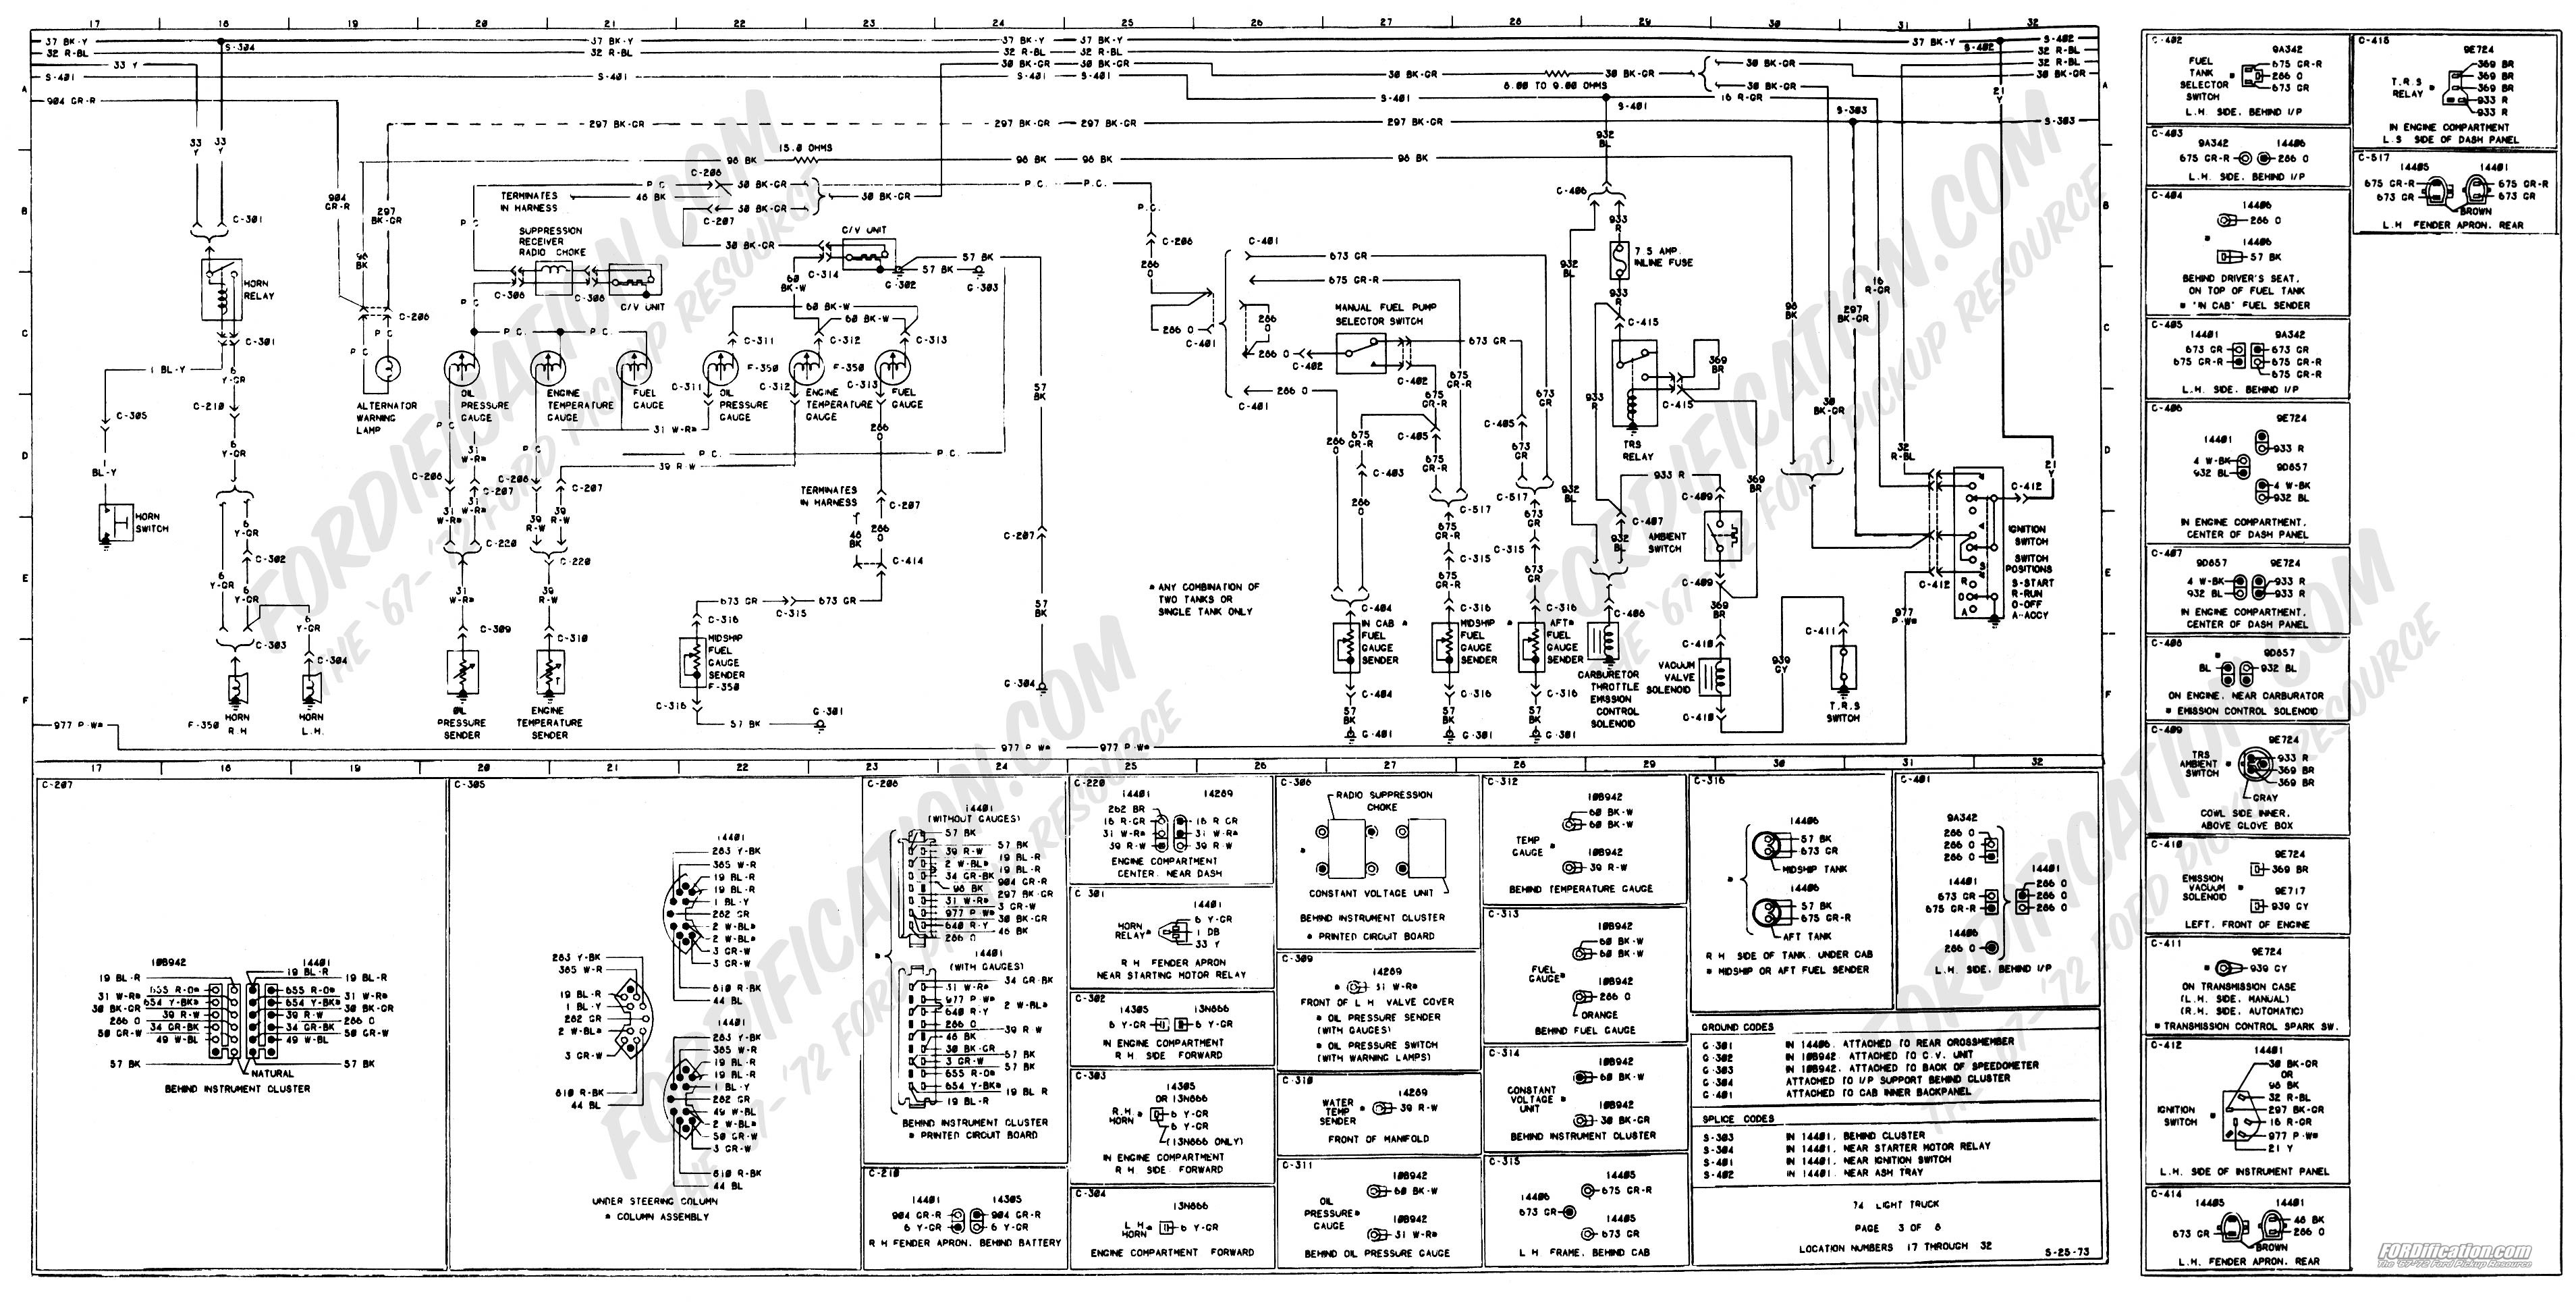 1994 F700 Wiring Diagram - Wiring Diagrams List